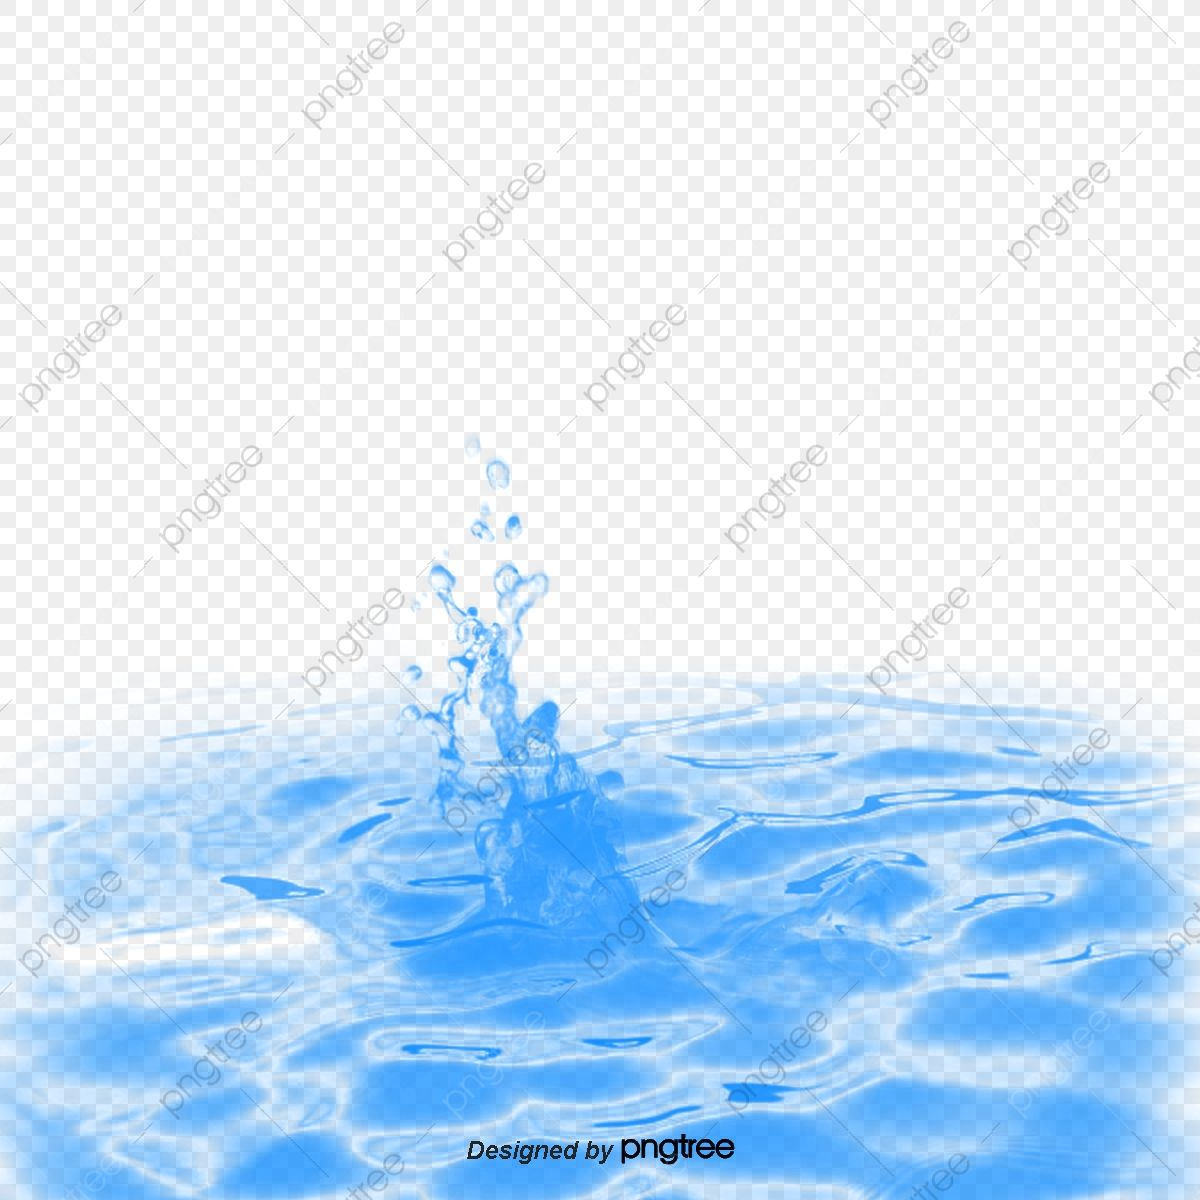 Water Water Clipart Drops Png Transparent Clipart Image And Psd File For Free Download Watercolor Background Water Ripples Graphic Resources